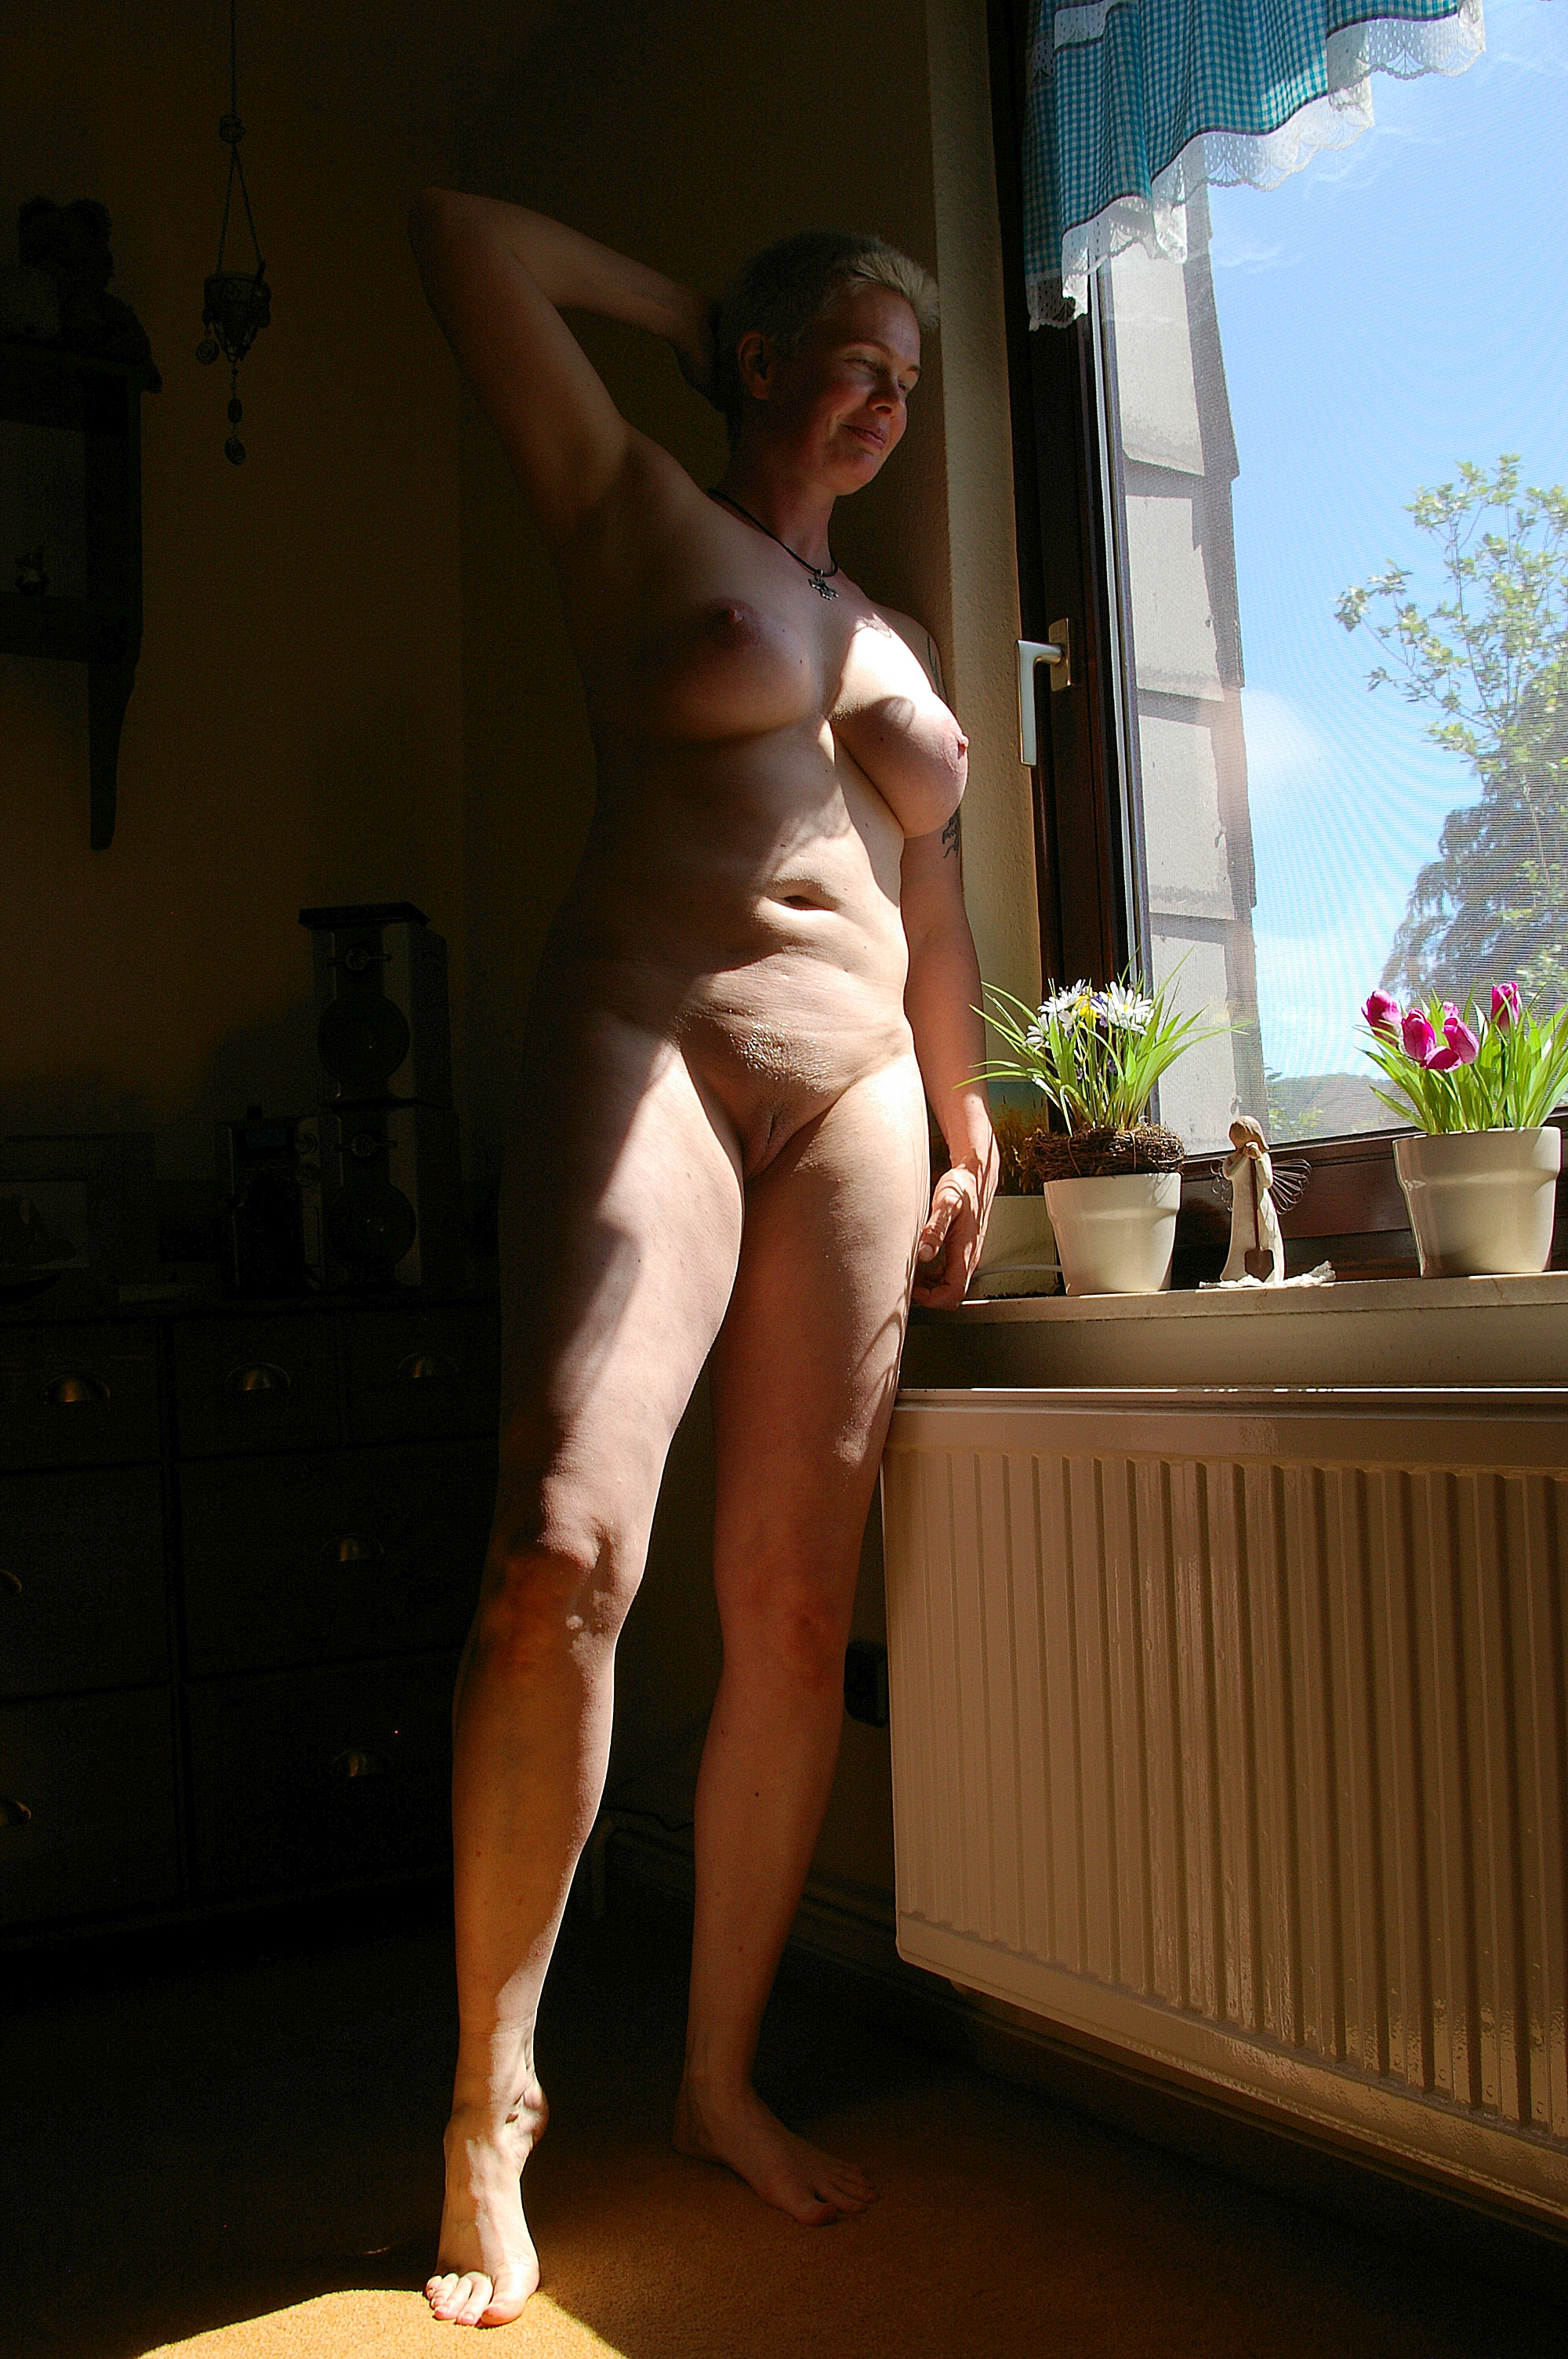 Naked in window